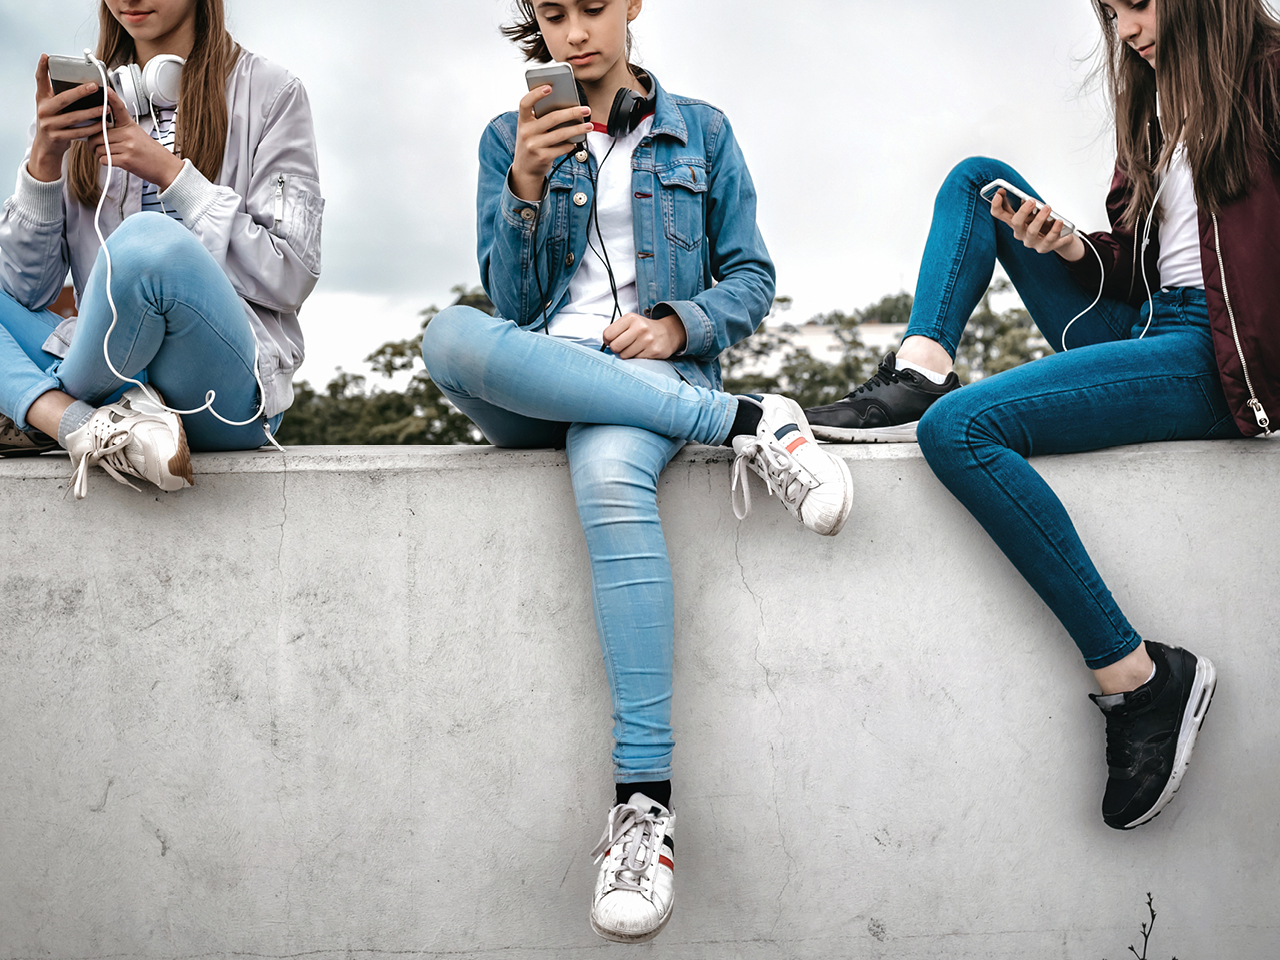 teenage girl on social media feature image shows girls sitting on a cement wall while using their phones